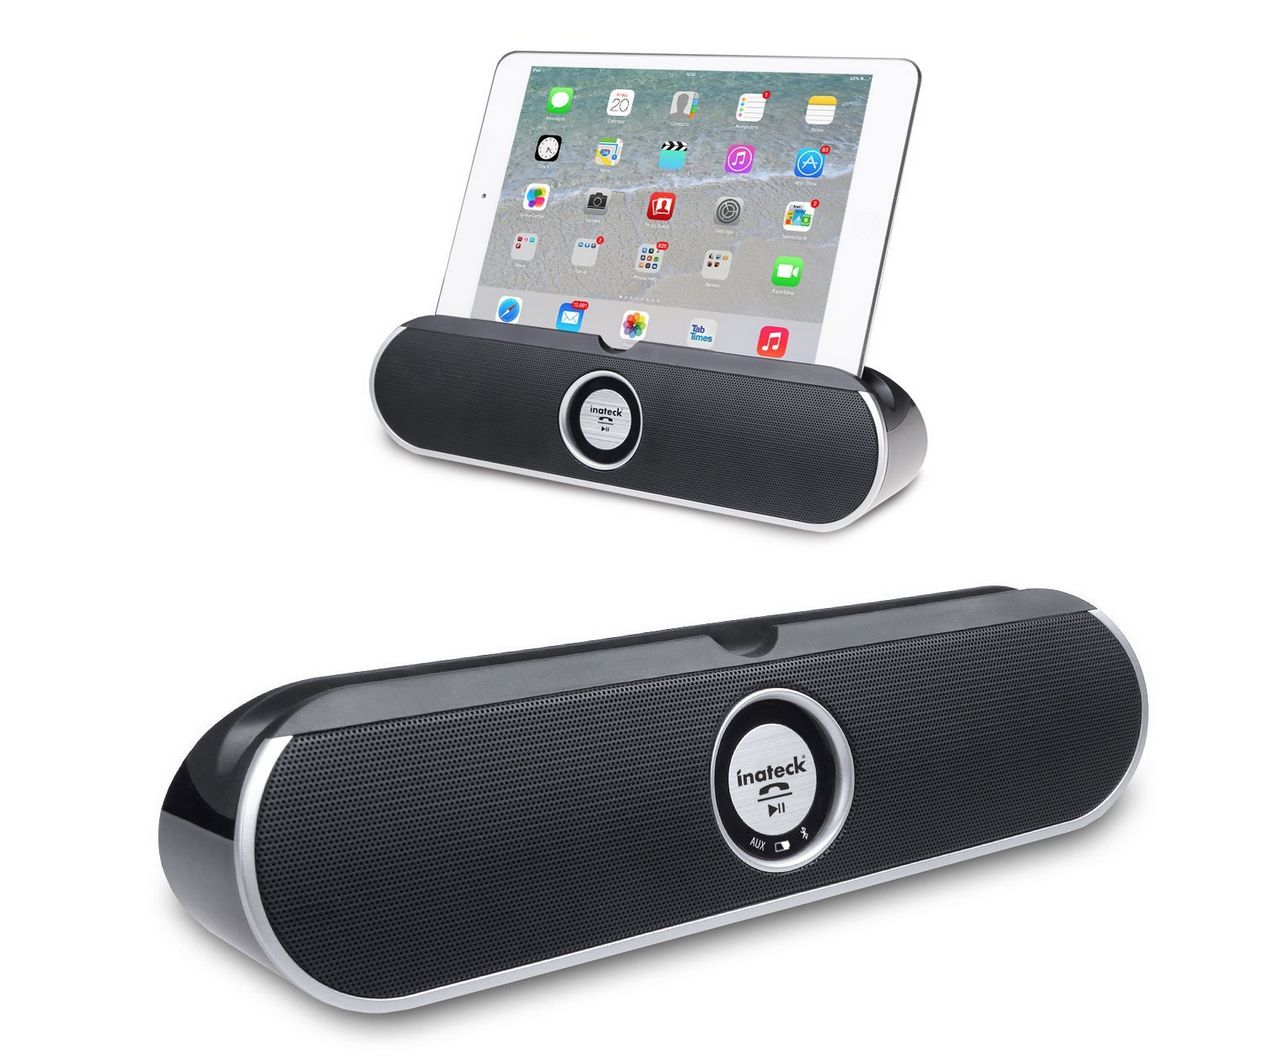 Highly Rated Inateck Dual-Driver Portable Wireless Bluetooth Speaker Only $24.99 (Reg. $62.99!)